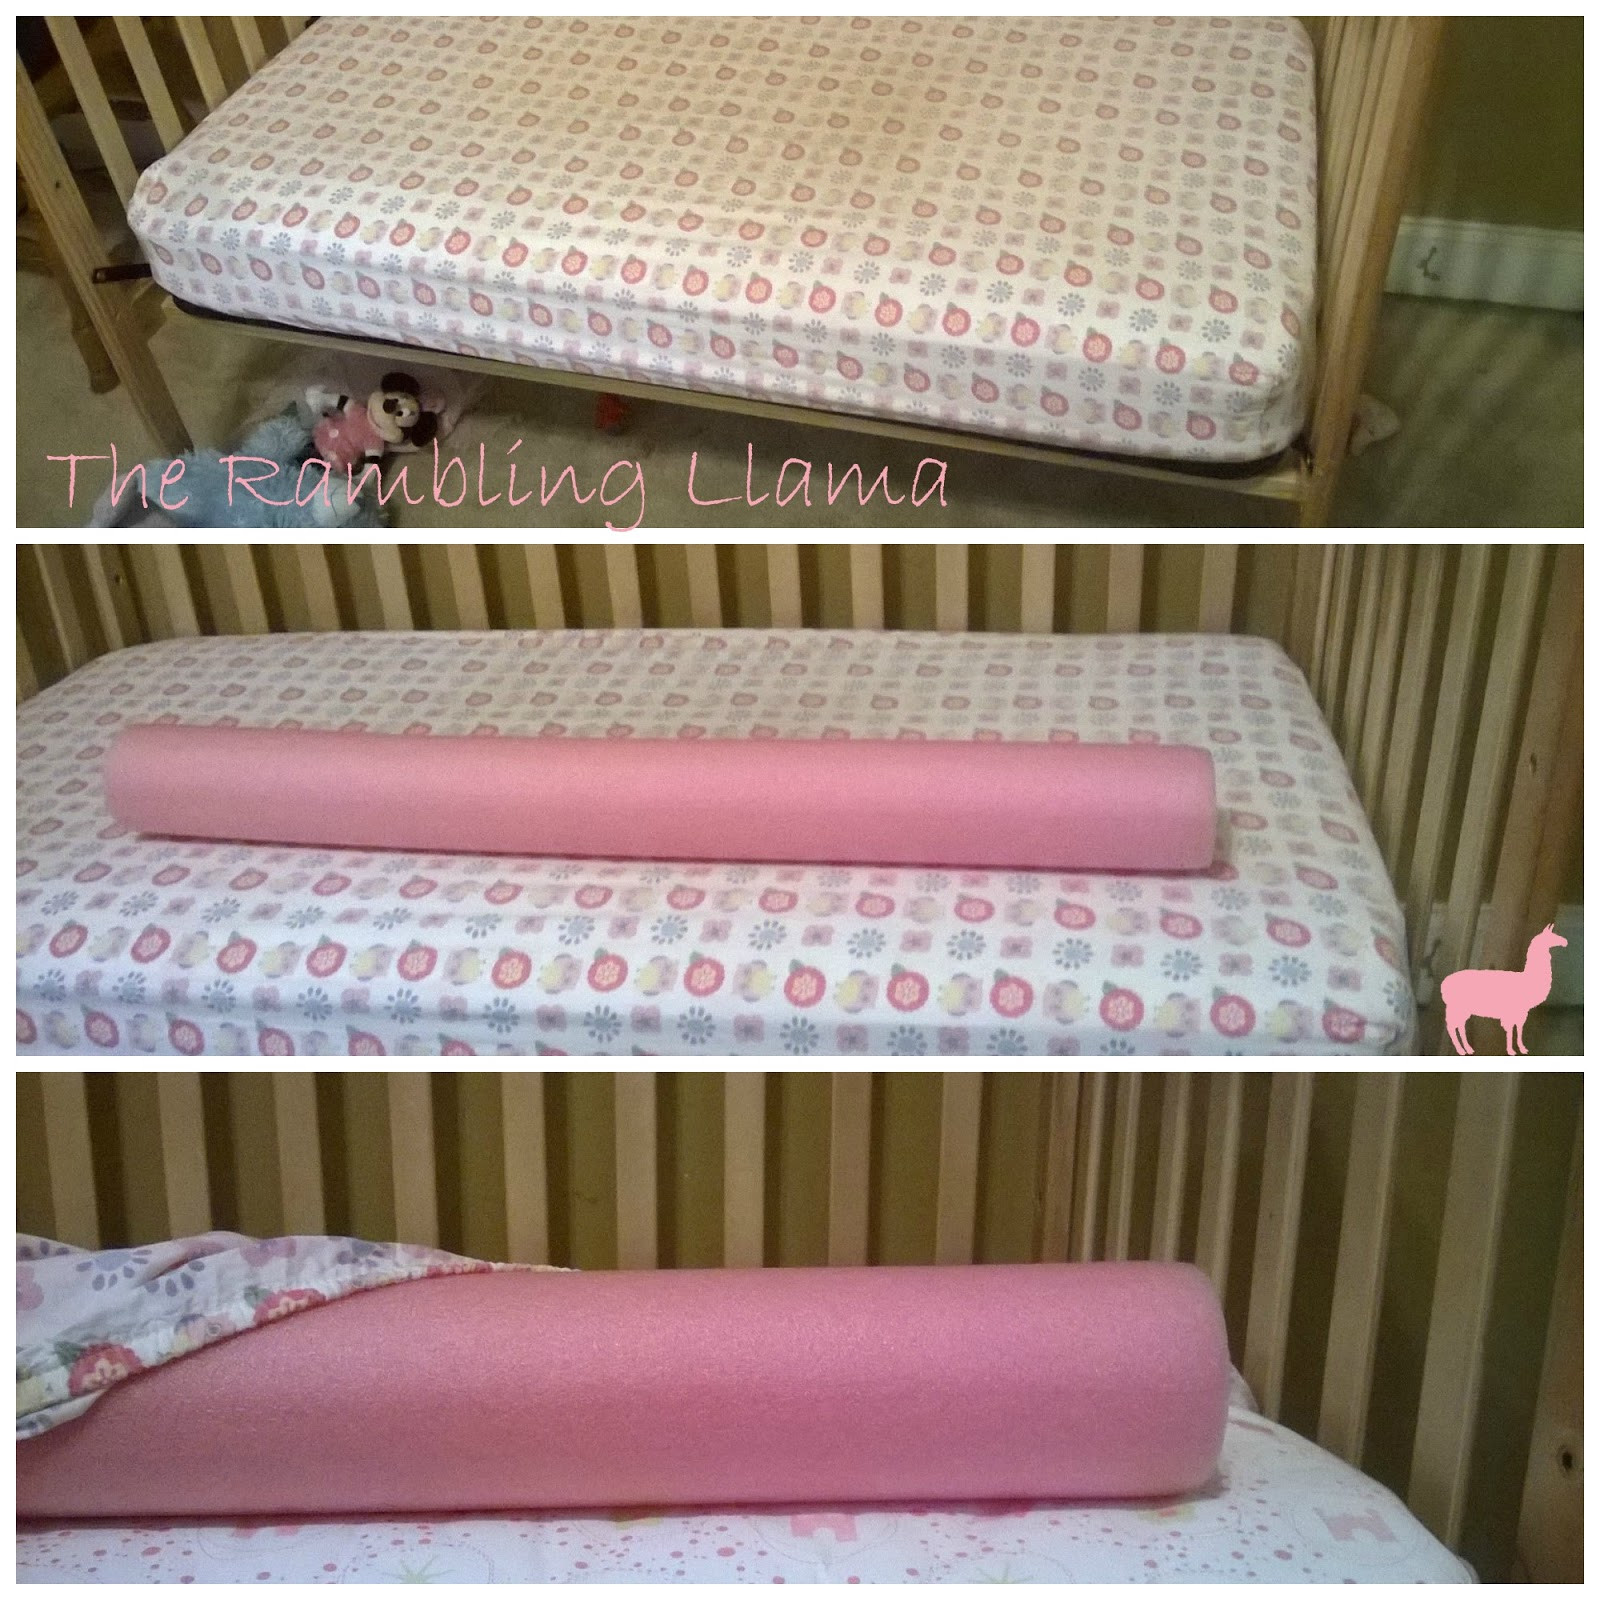 Best ideas about DIY Bed Rails . Save or Pin The Rambling Llama DIY Bed Rail Now.